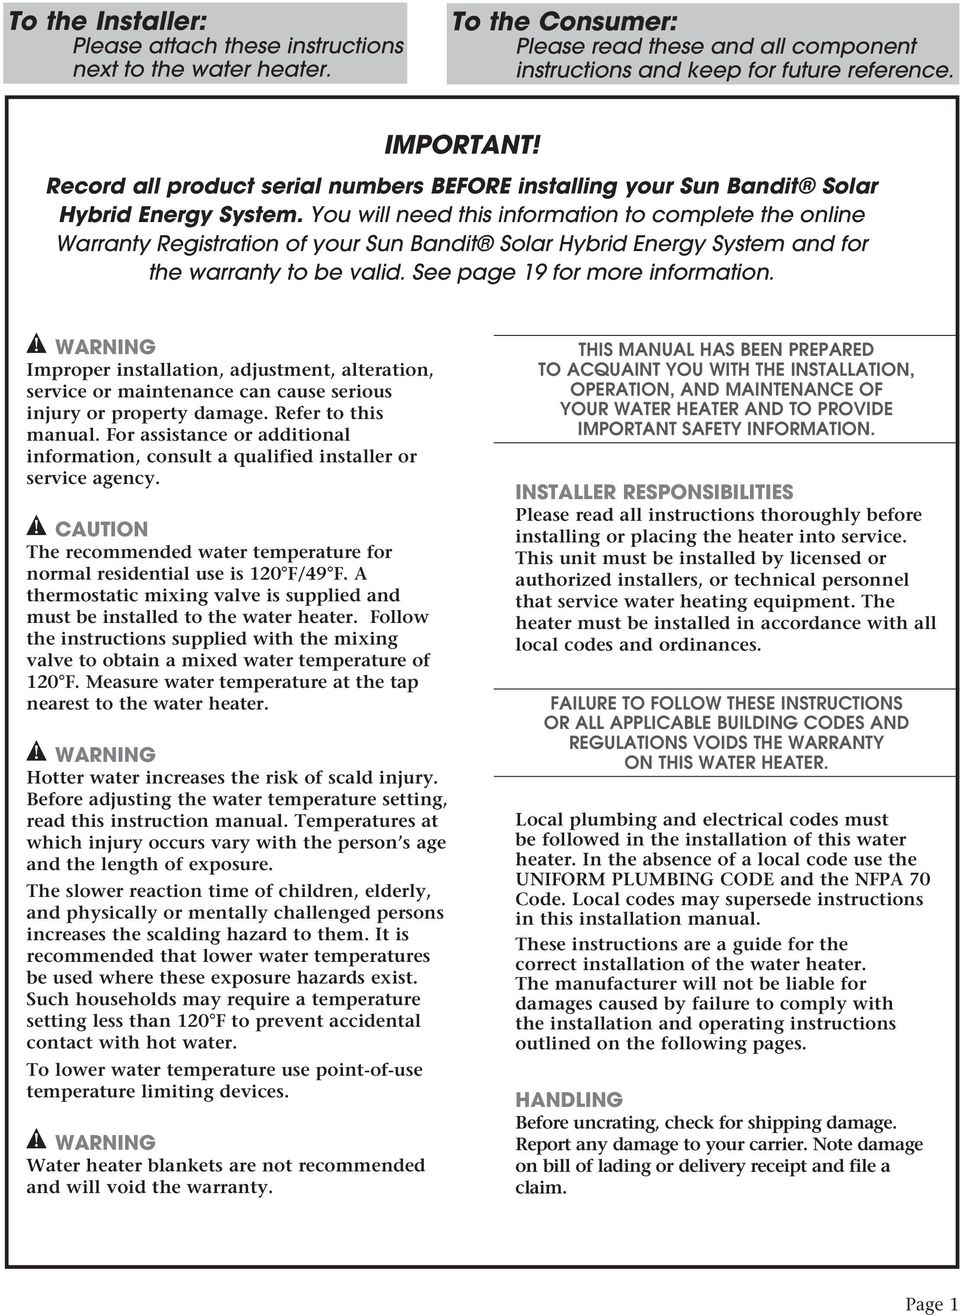 You will need this information to complete the online Warranty Registration of your Sun Bandit Solar Hybrid Energy System and for the warranty to be valid. See page 19 for more information.